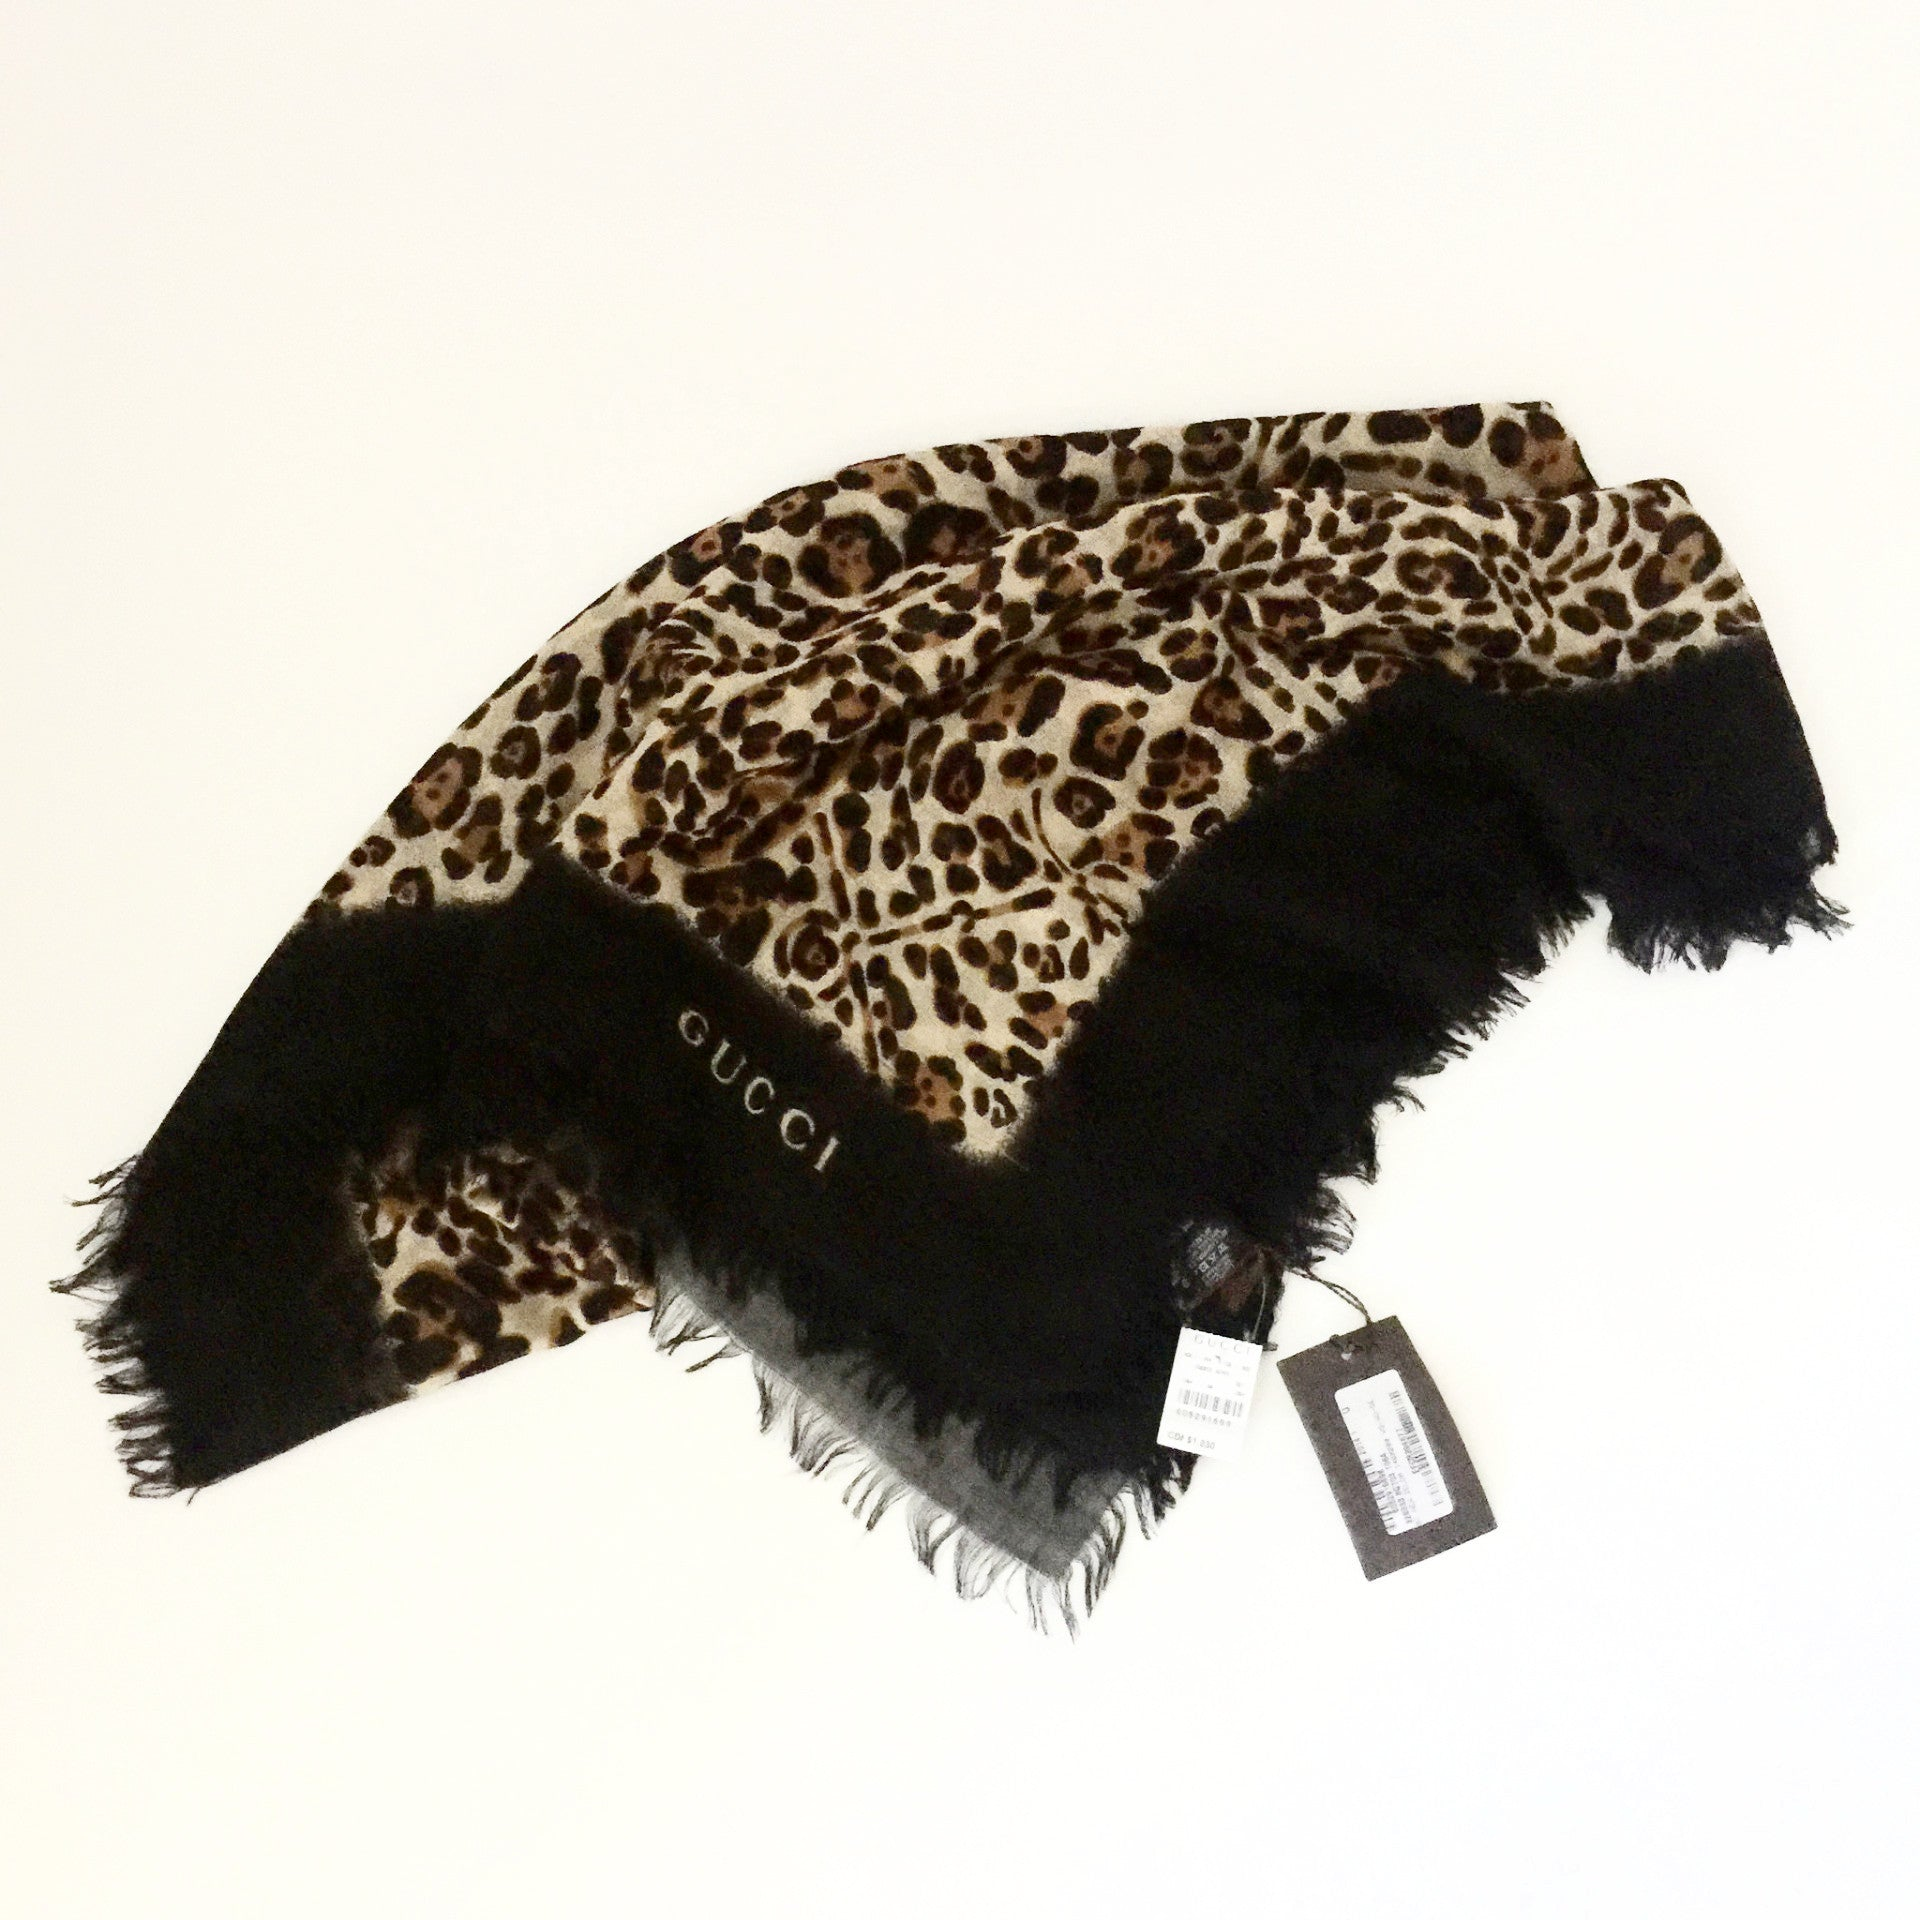 Authentic GUCCI Leopard Print Stole/Wrap/Scarf